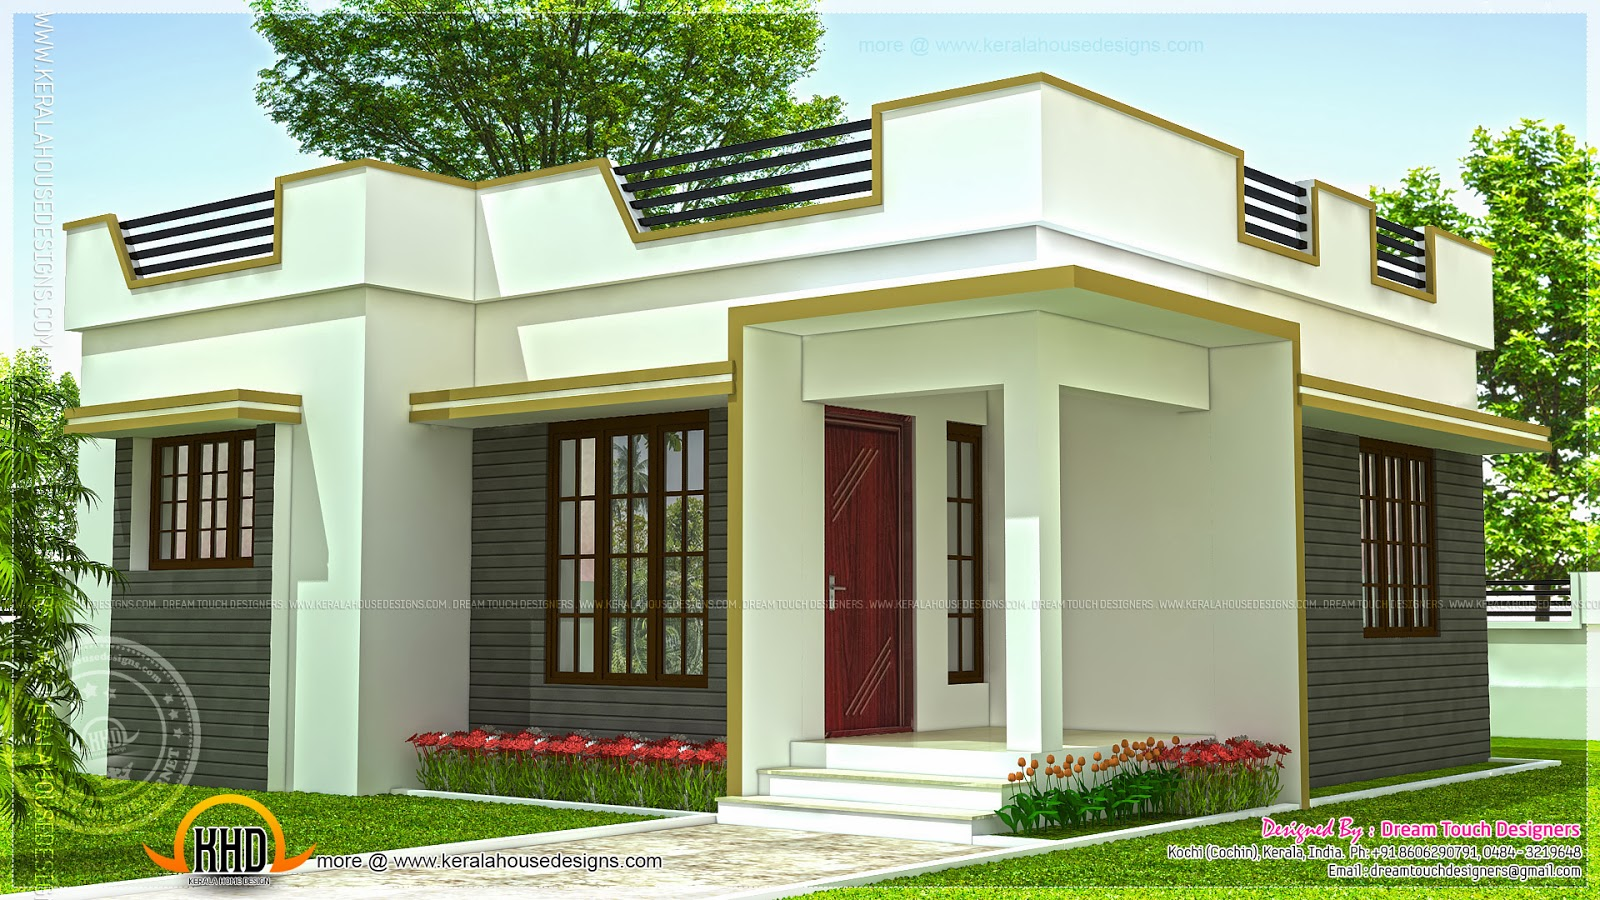 Lately 21 small house design kerala small house kerala jpg 1600x900 house plans pinterest house